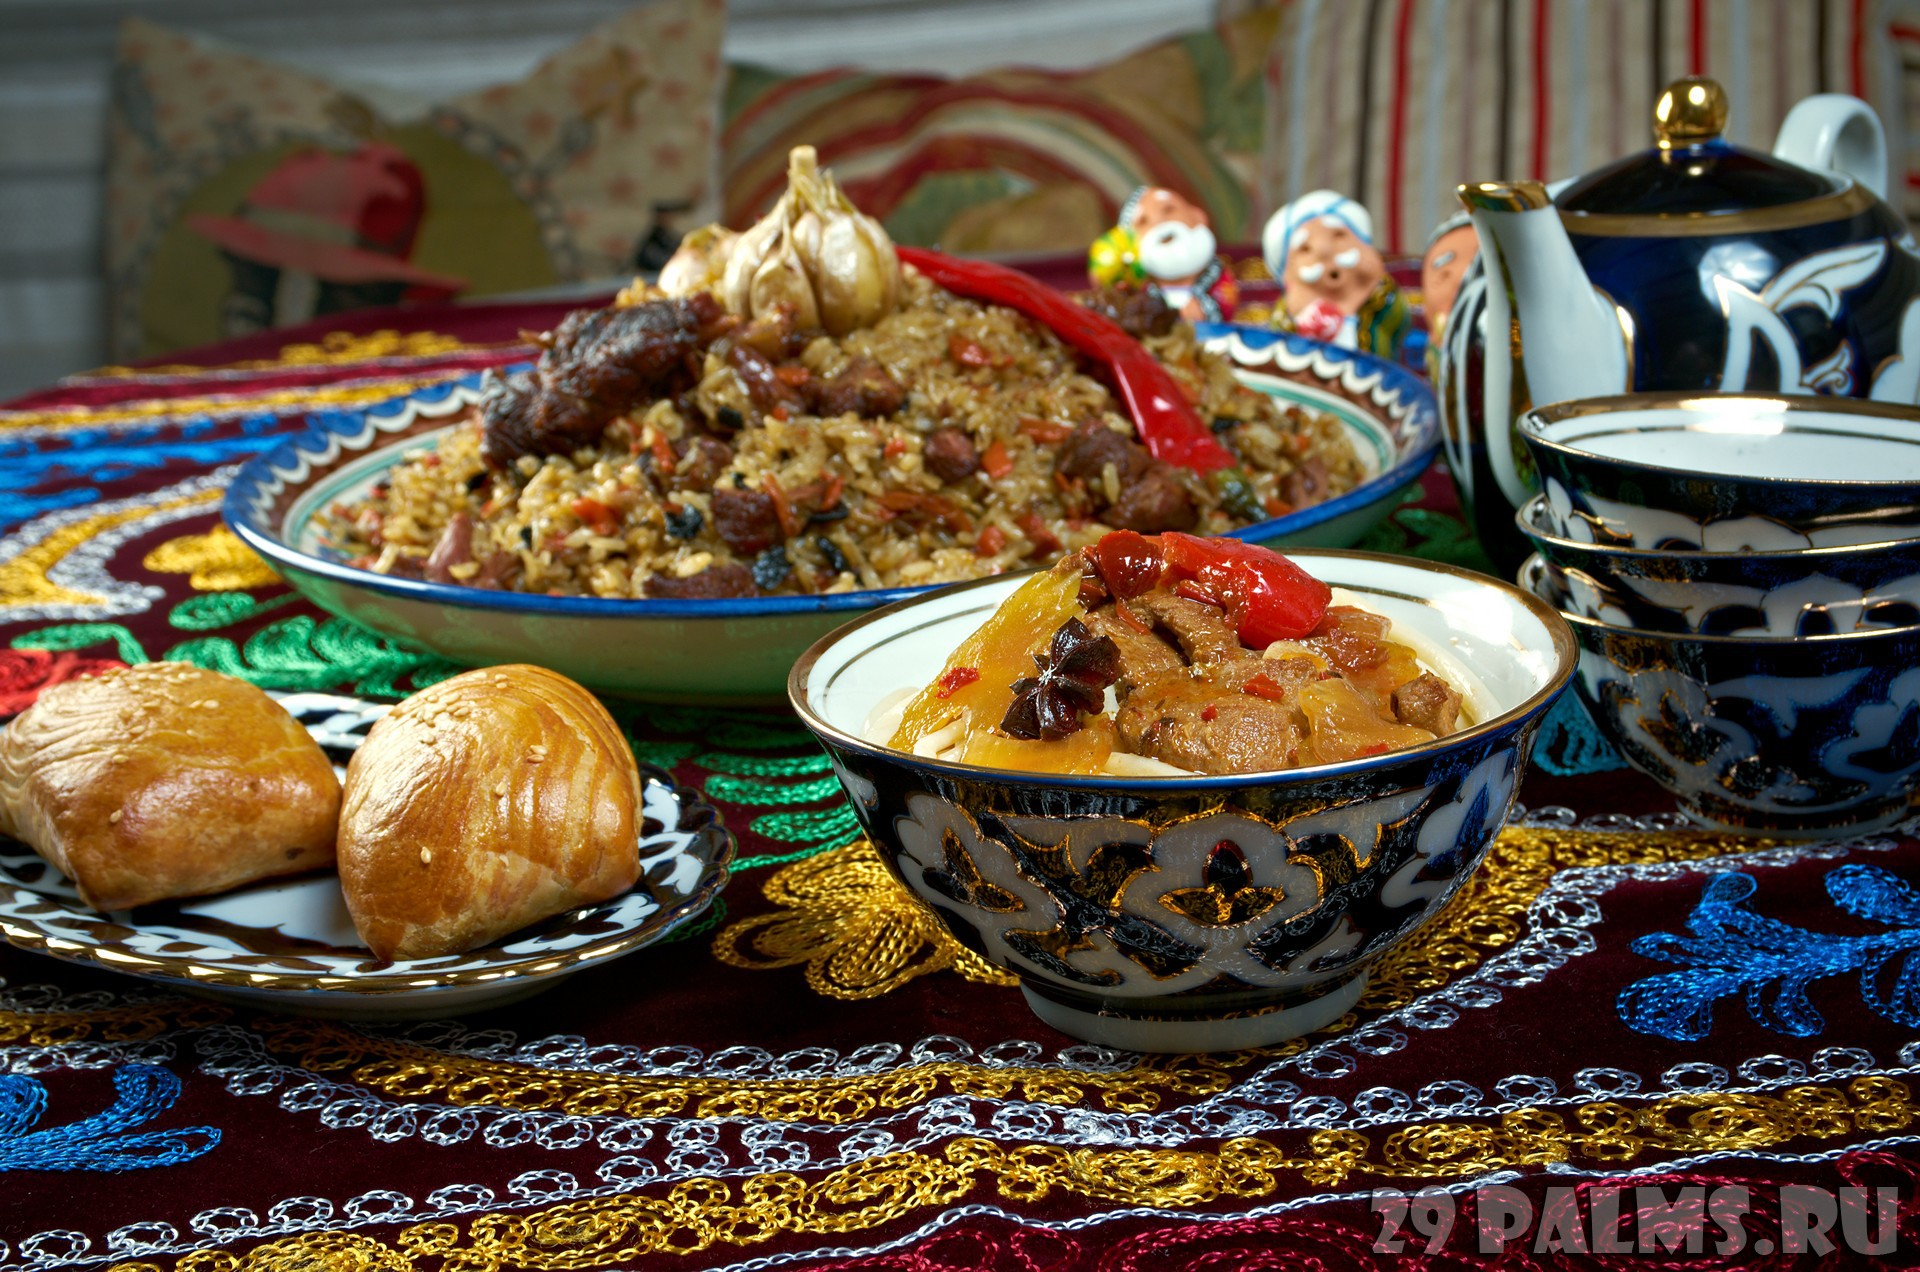 food set  Central Asian cuisine - plov, lagman,sherbet  and samsa